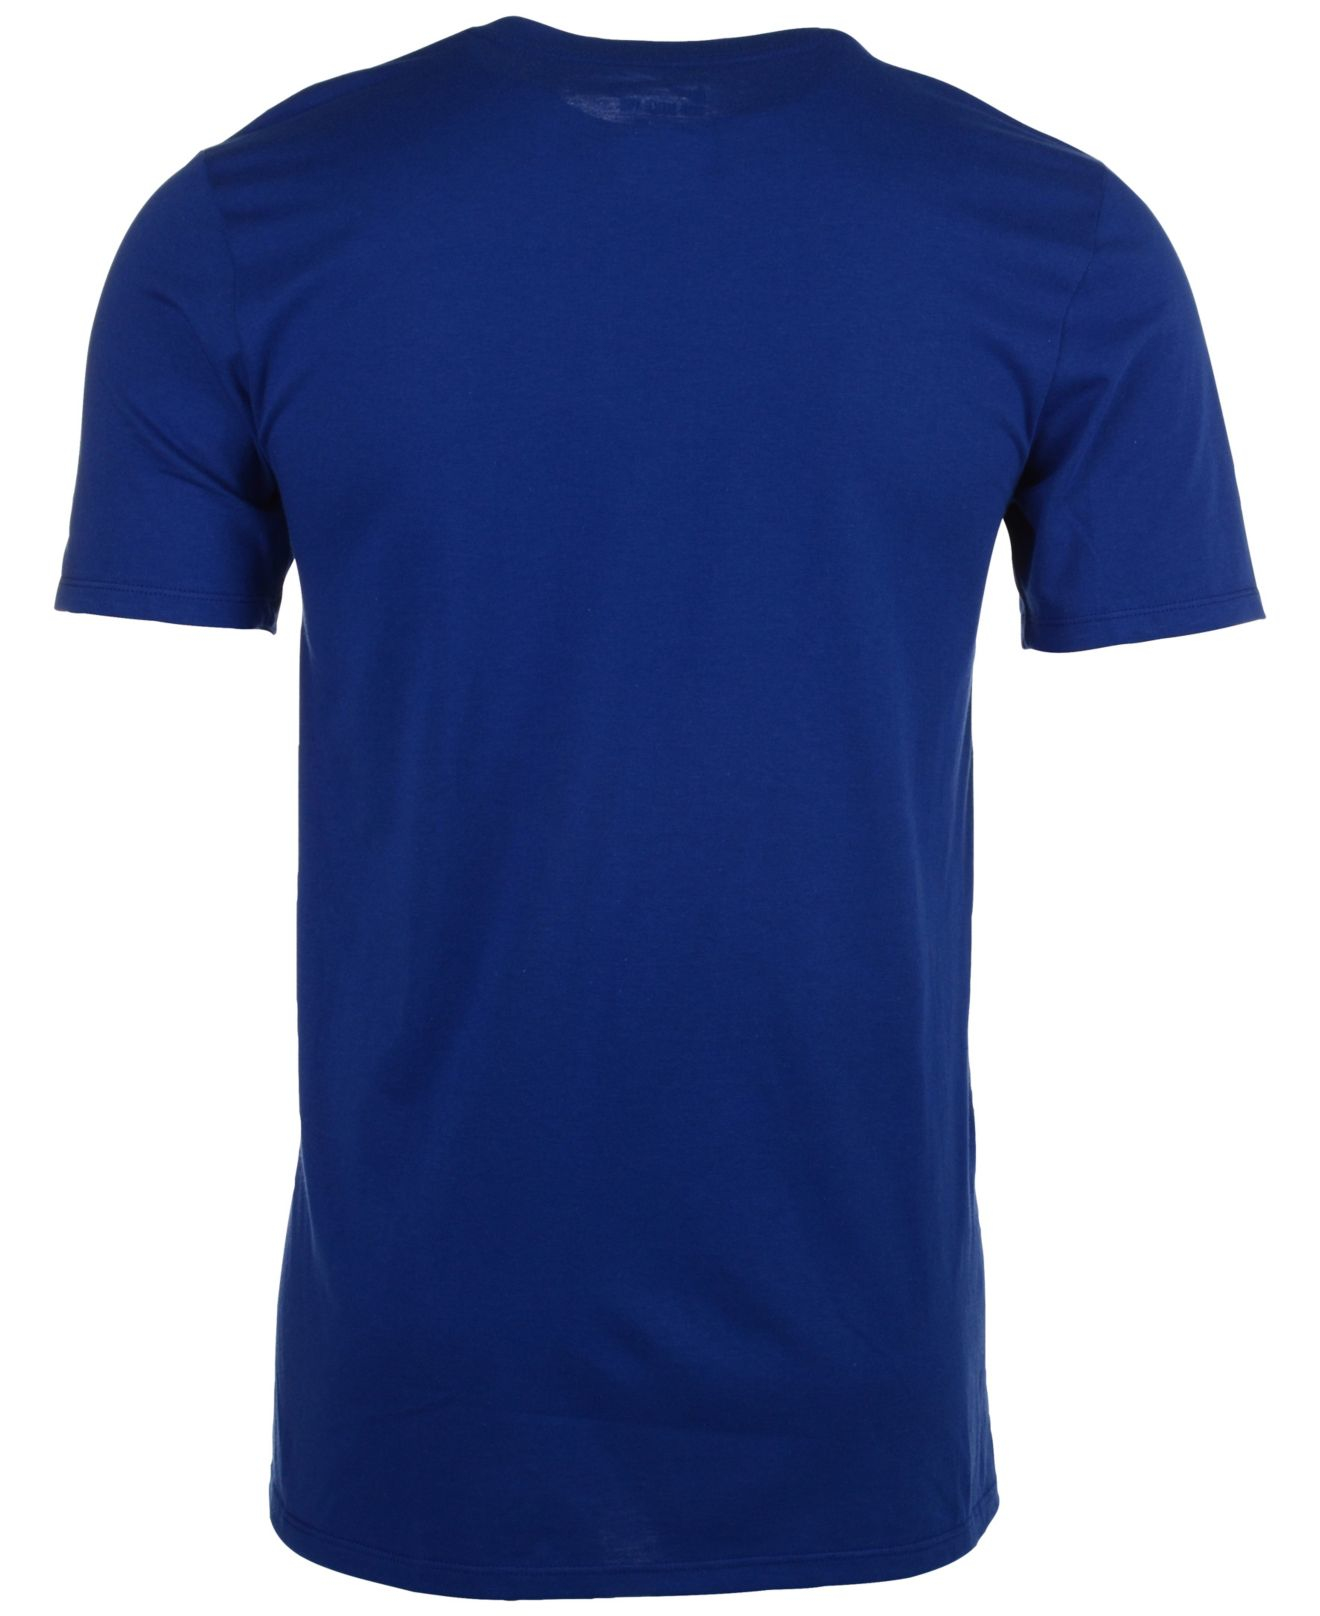 Men. Kids. Shoes. Jewelry & Watches. Bags & Accessories. Premium Beauty. Savings. Skip to next department. Blue Shirts. Showing 40 of 48 results that match your query. Search Product Result. Women Casual Waist Fastening Top Shirt and Blouse Blue. Product Image. Price $ Product Title. Women Casual Waist Fastening Top Shirt and.